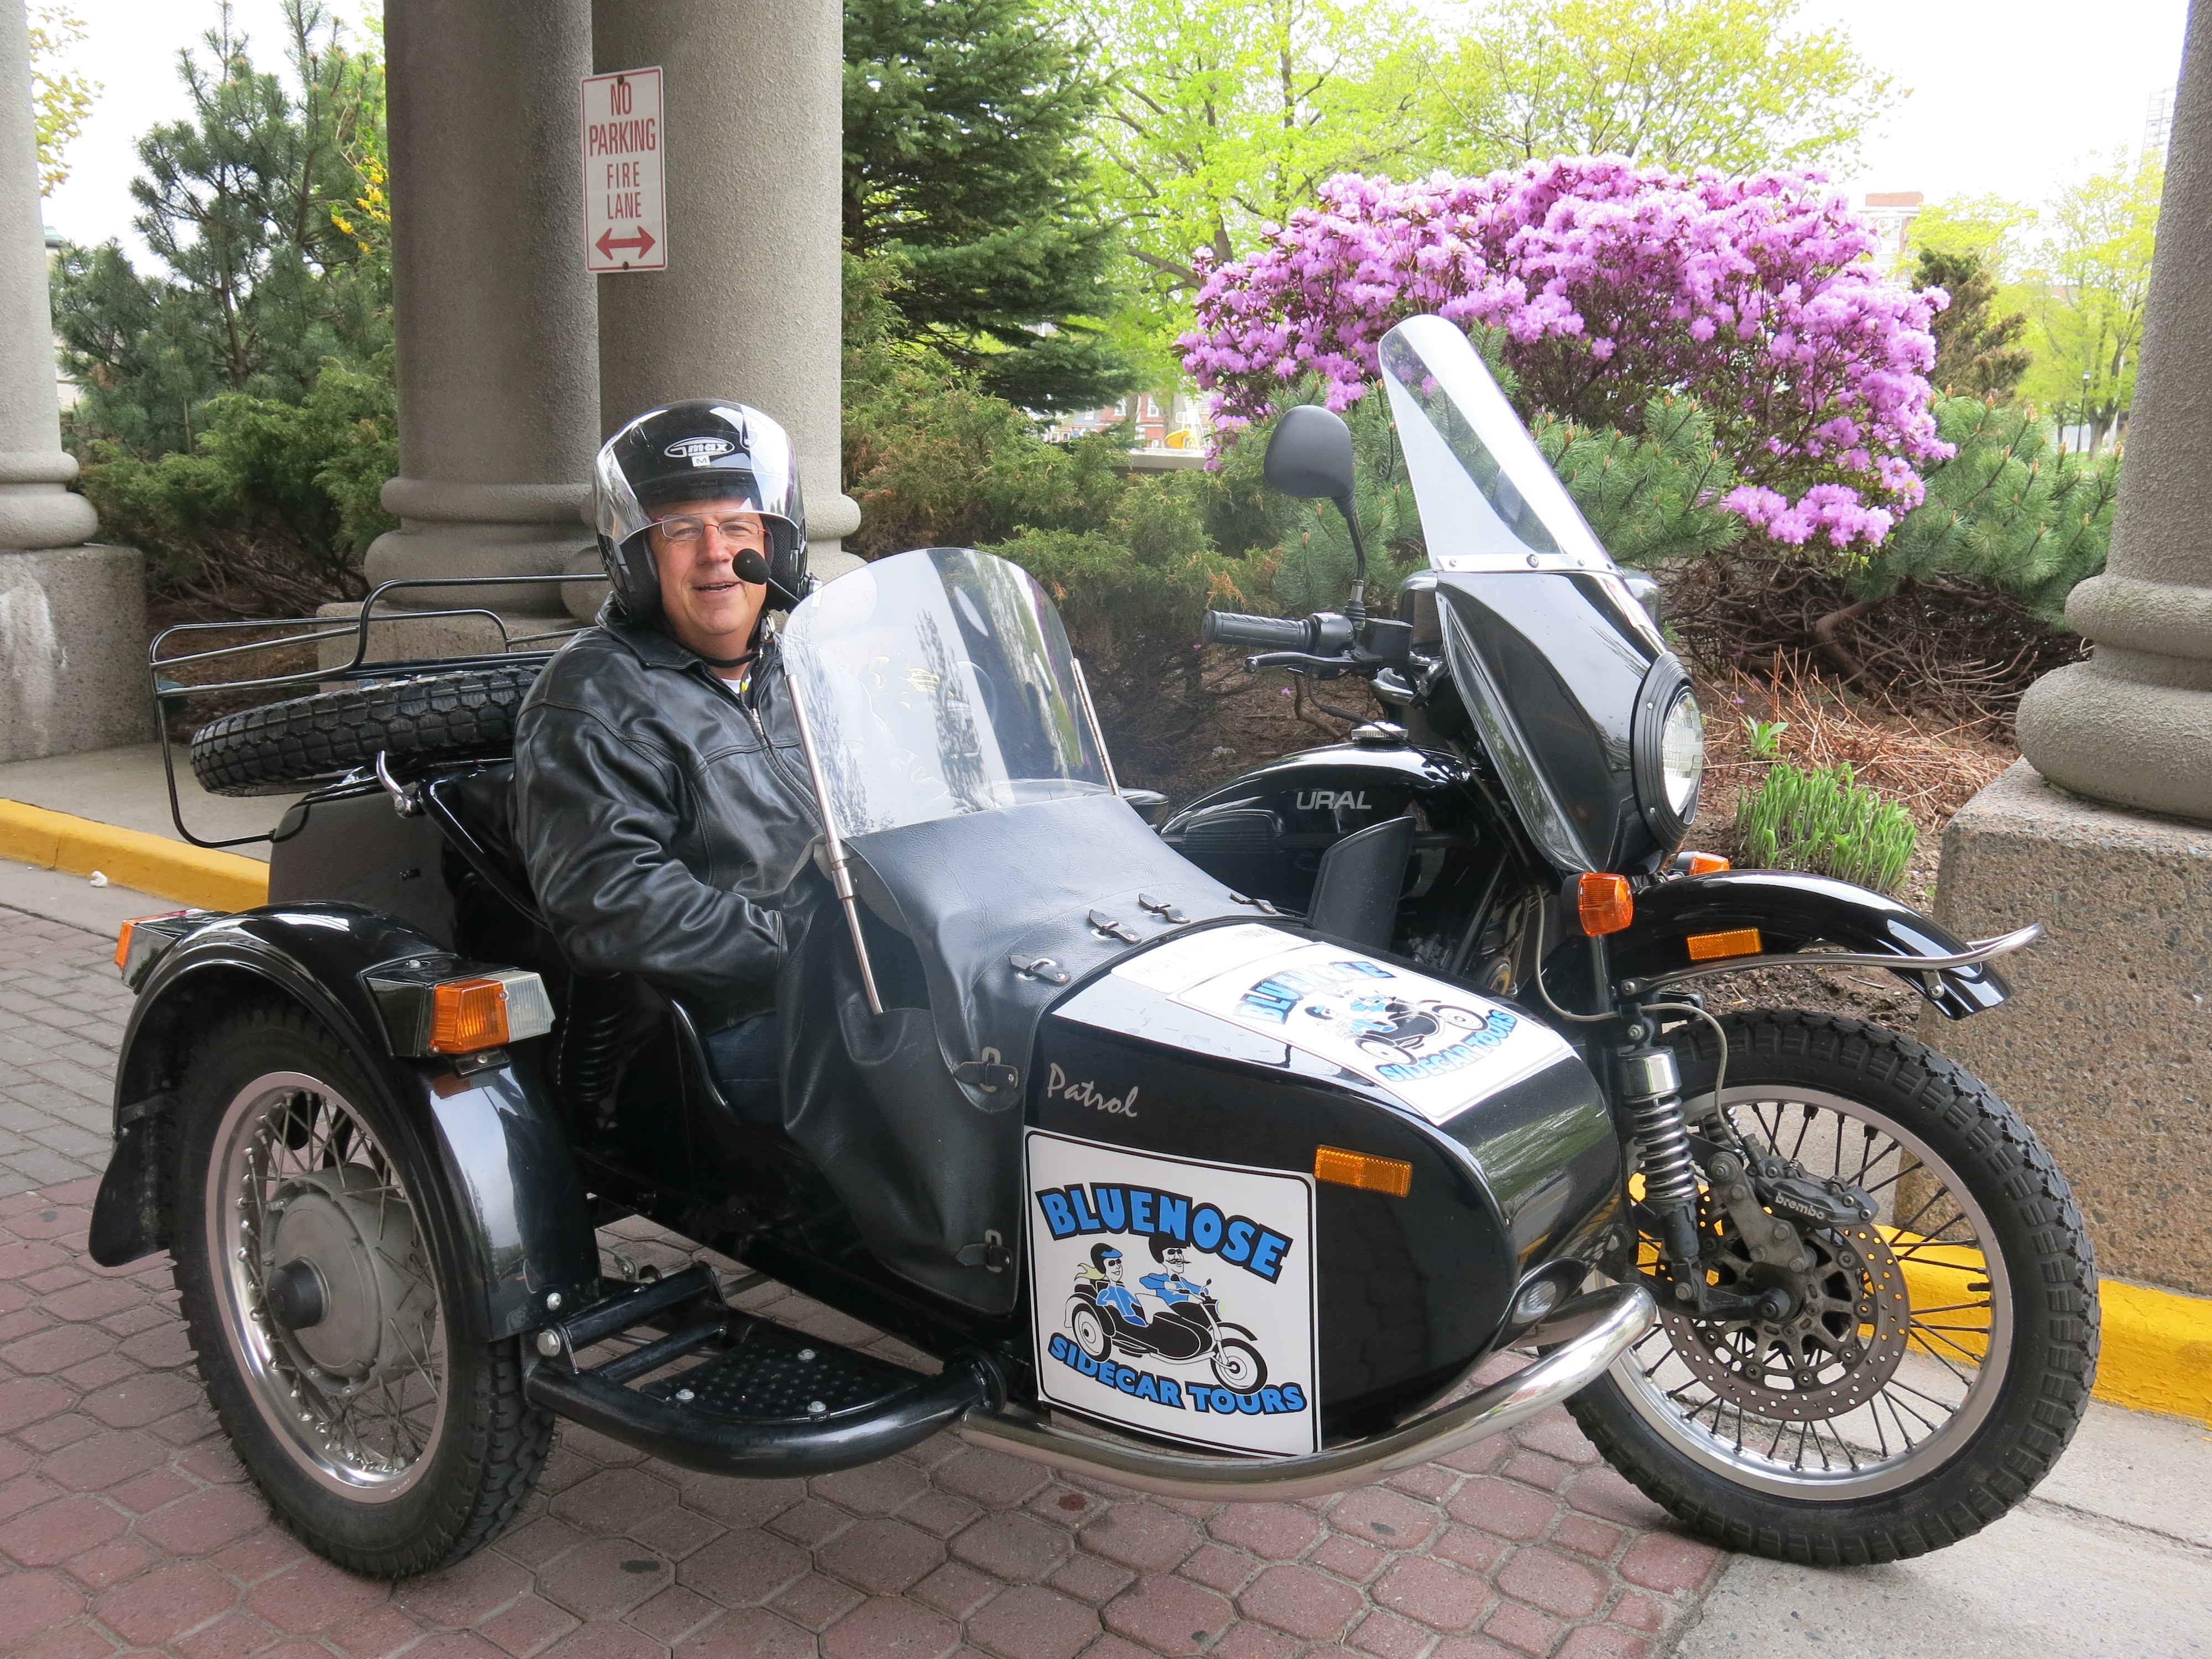 Take a tour of Halifax or Peggy's Cove in a motorcycle sidecar for something different. JIM BYERS PHOTO